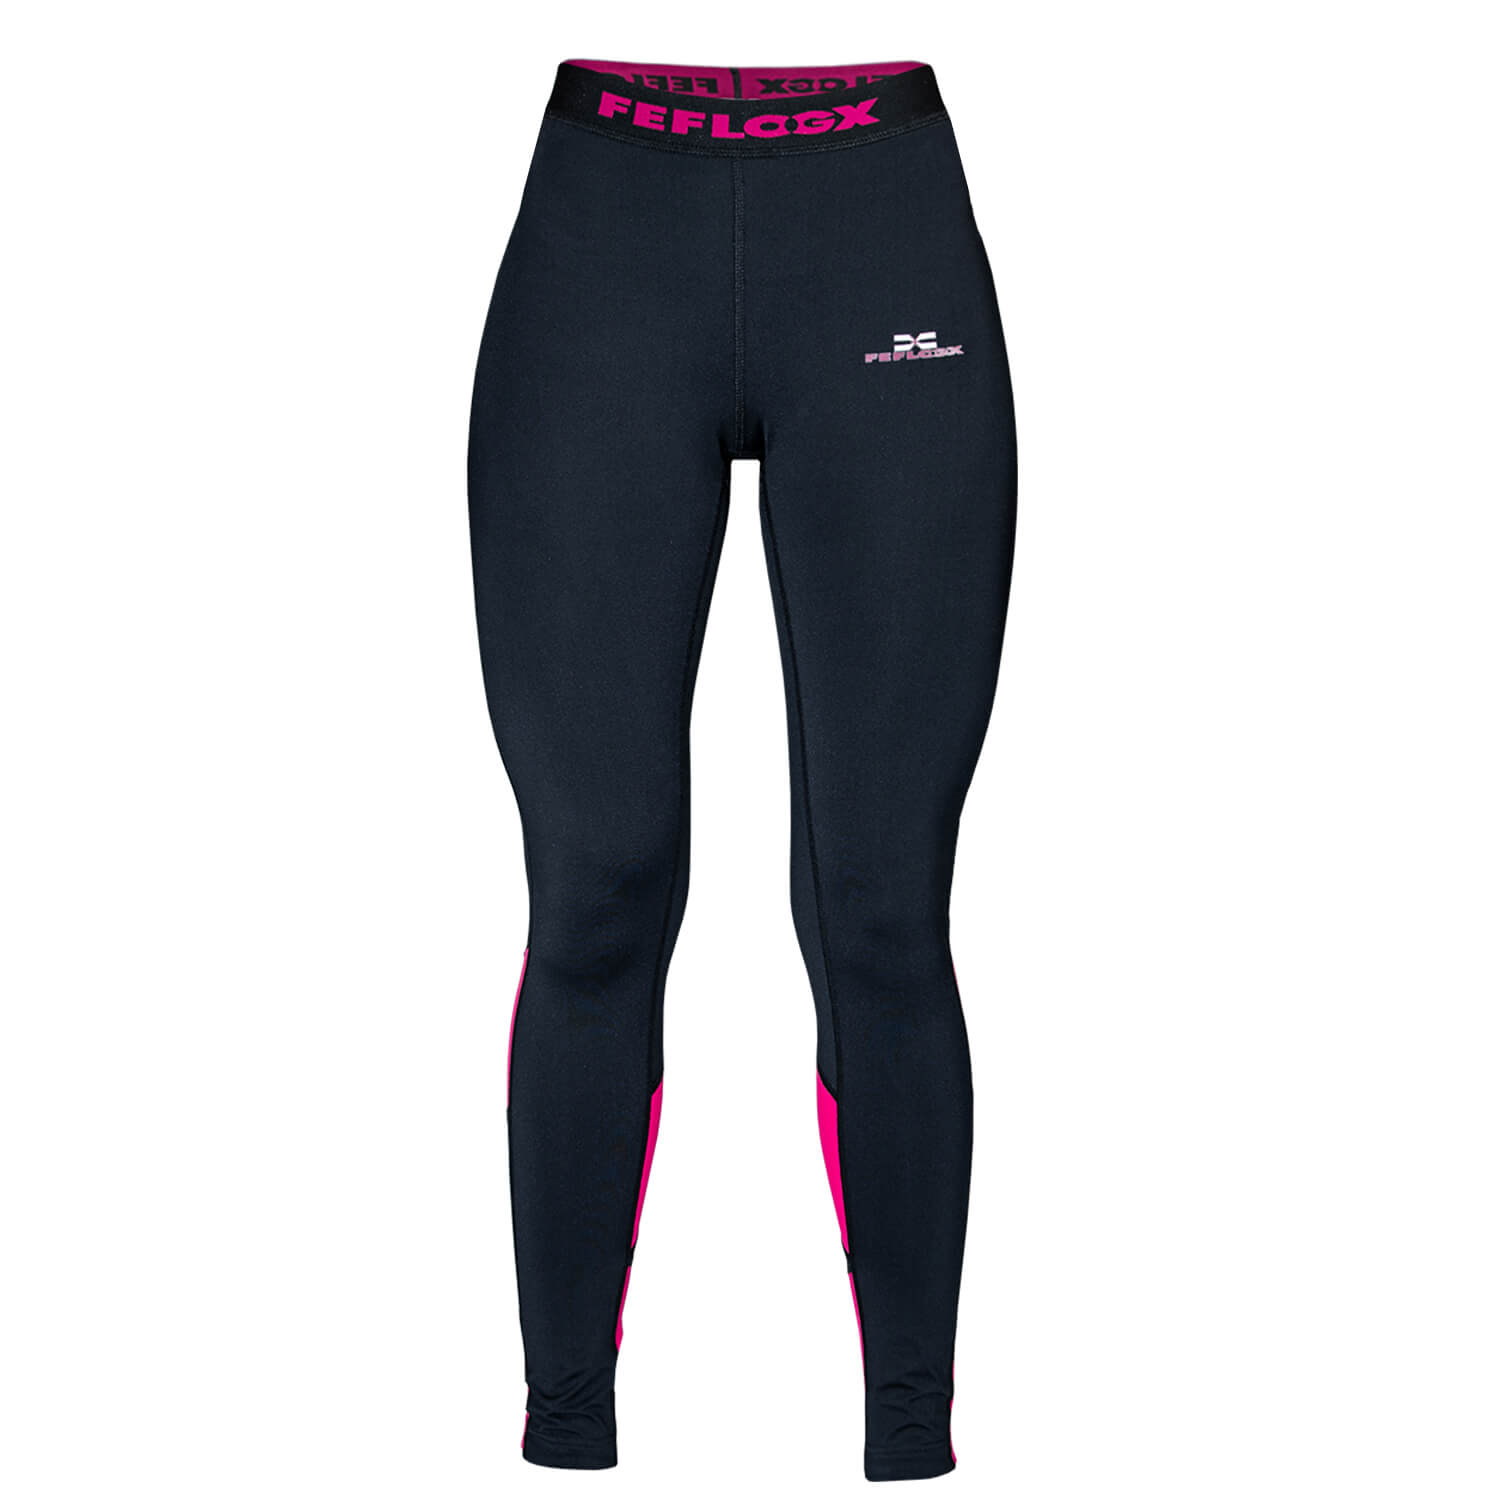 FEFLOGX Sportswear Damen Leggings Motion, Ghost-Foto (1).